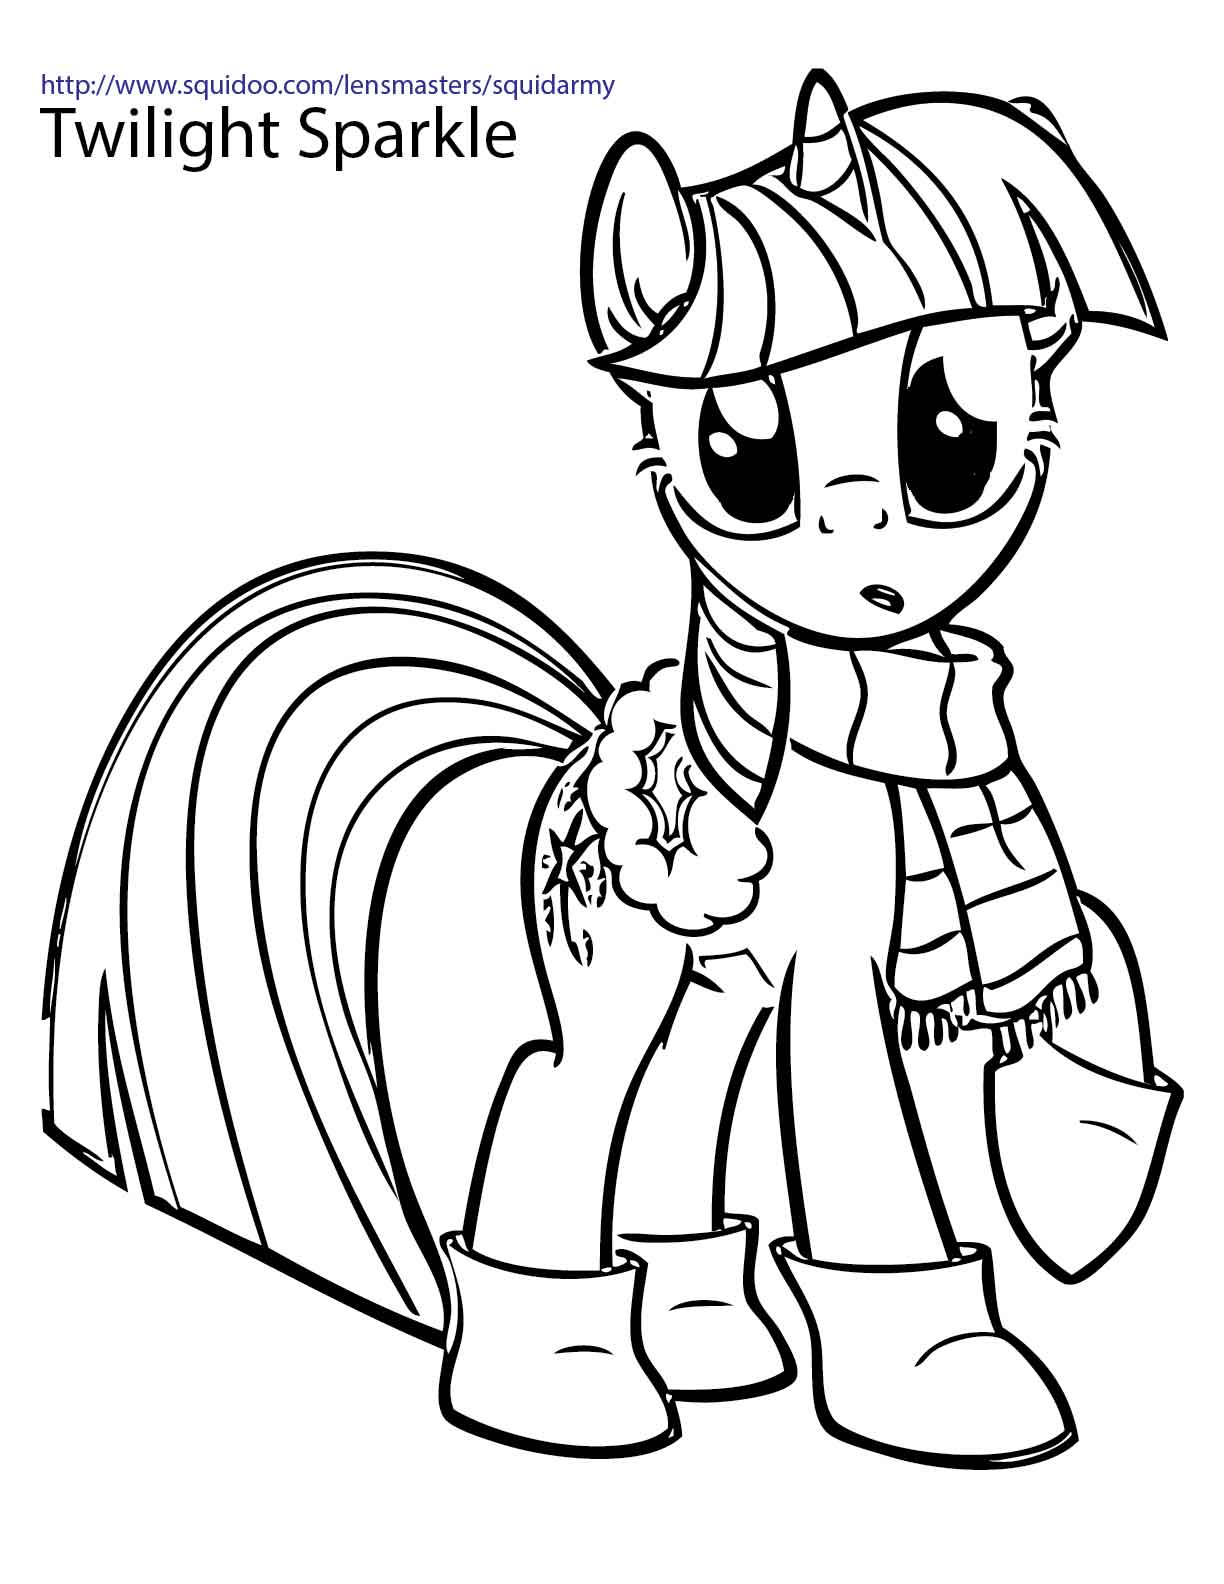 mlp coloring page coloring pages my little pony coloring pages free and mlp page coloring